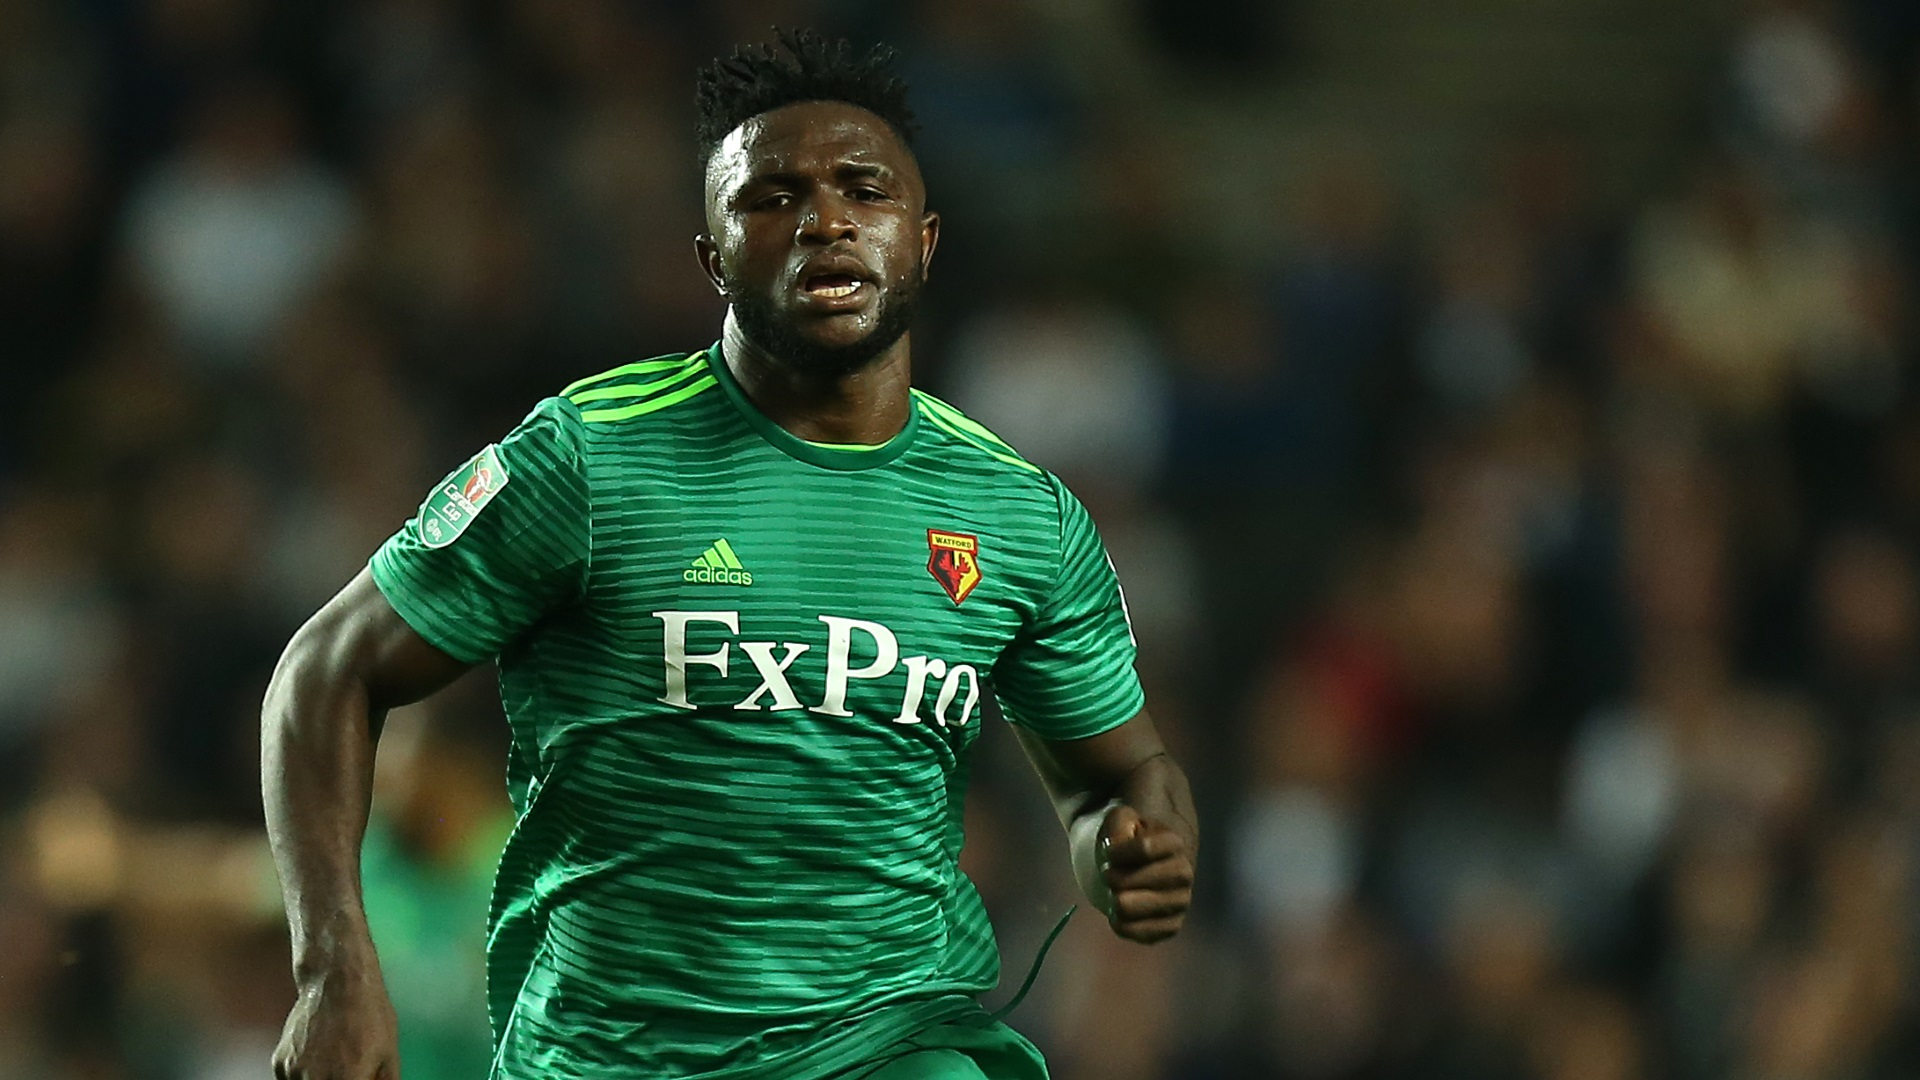 Success Fires Blanks In Watford's Loss; Balogun, Iheanacho Benched